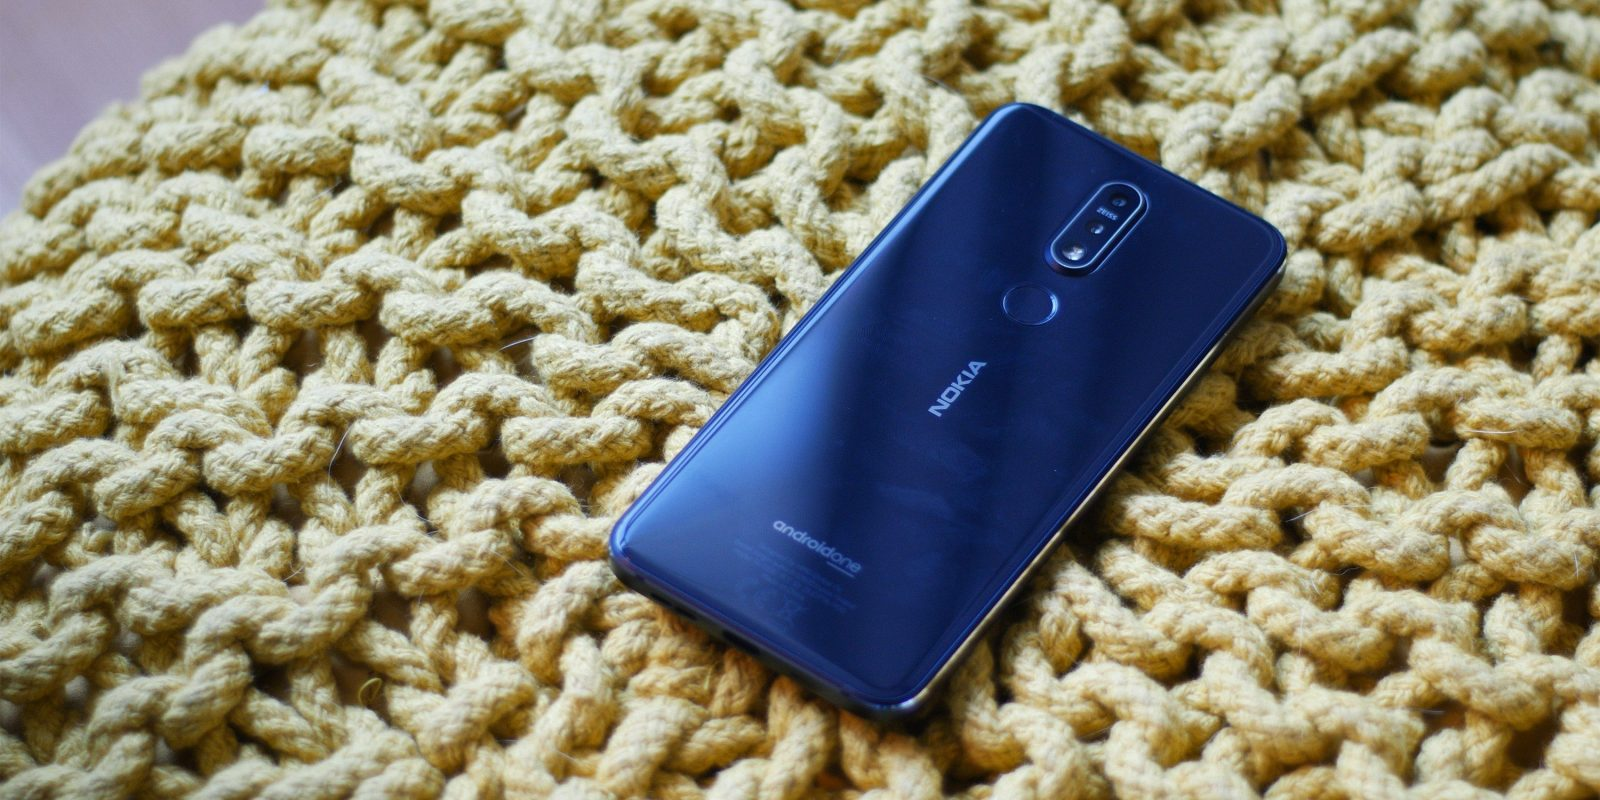 Score the Nokia 7.1 Android Smartphone at its all-time low of $210 (Reg. $280)